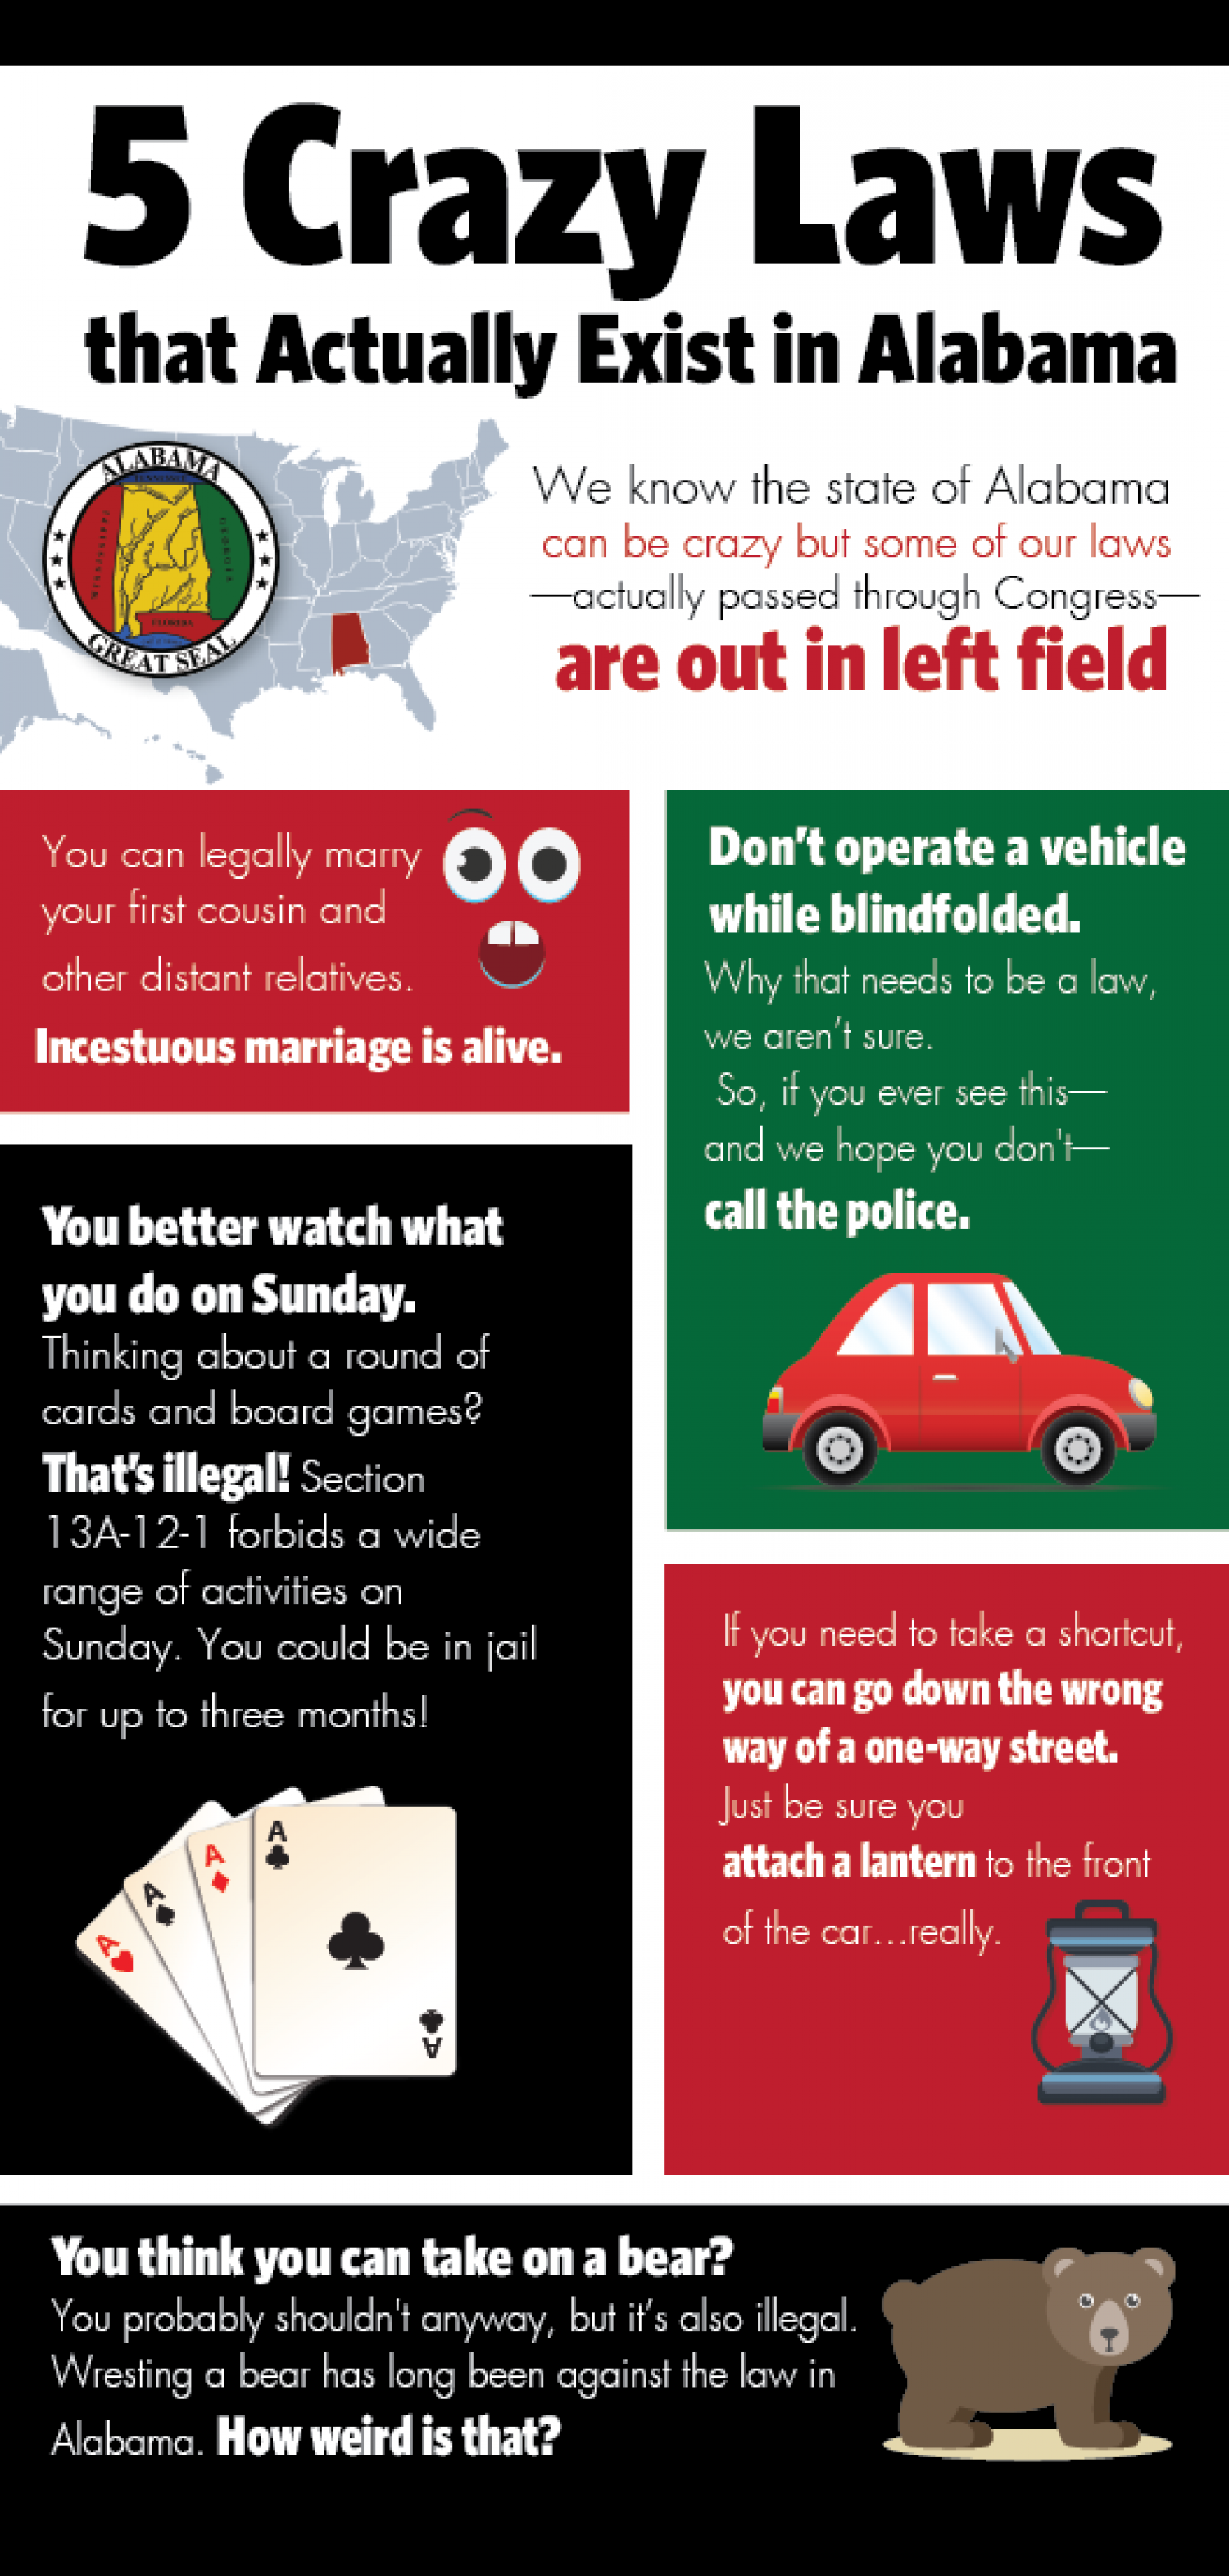 5 Crazy Laws that Actually Exist in Alabama Infographic